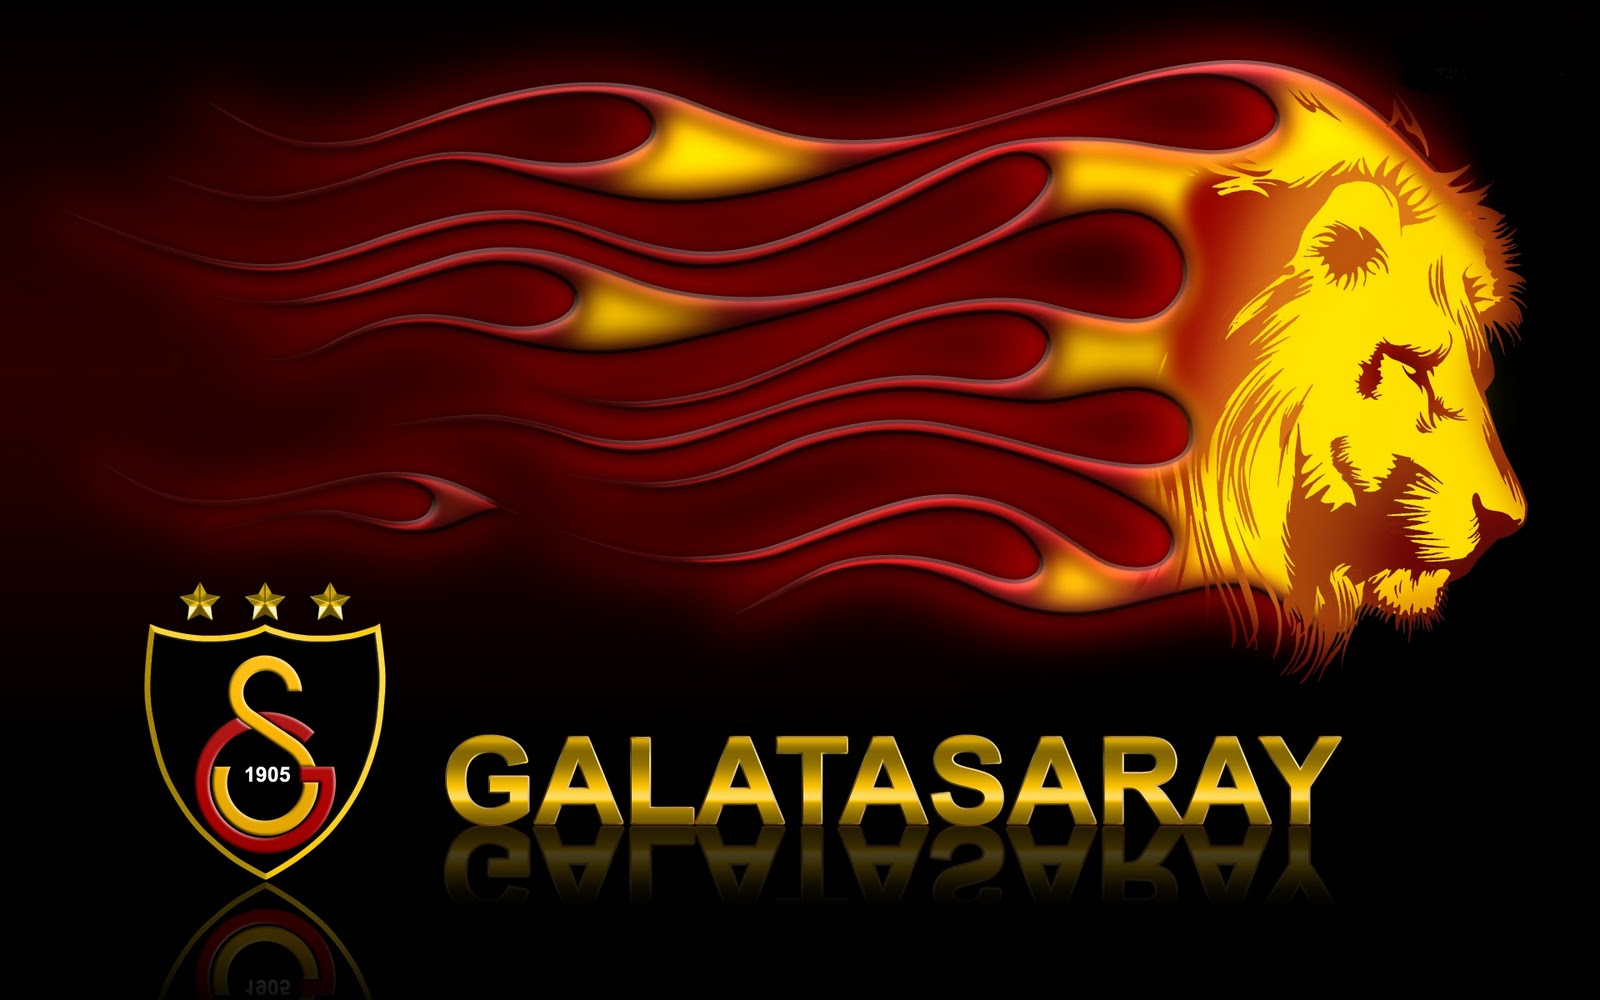 Galatasaray Duvarka    Tlar   Galatasaray Wallpaper